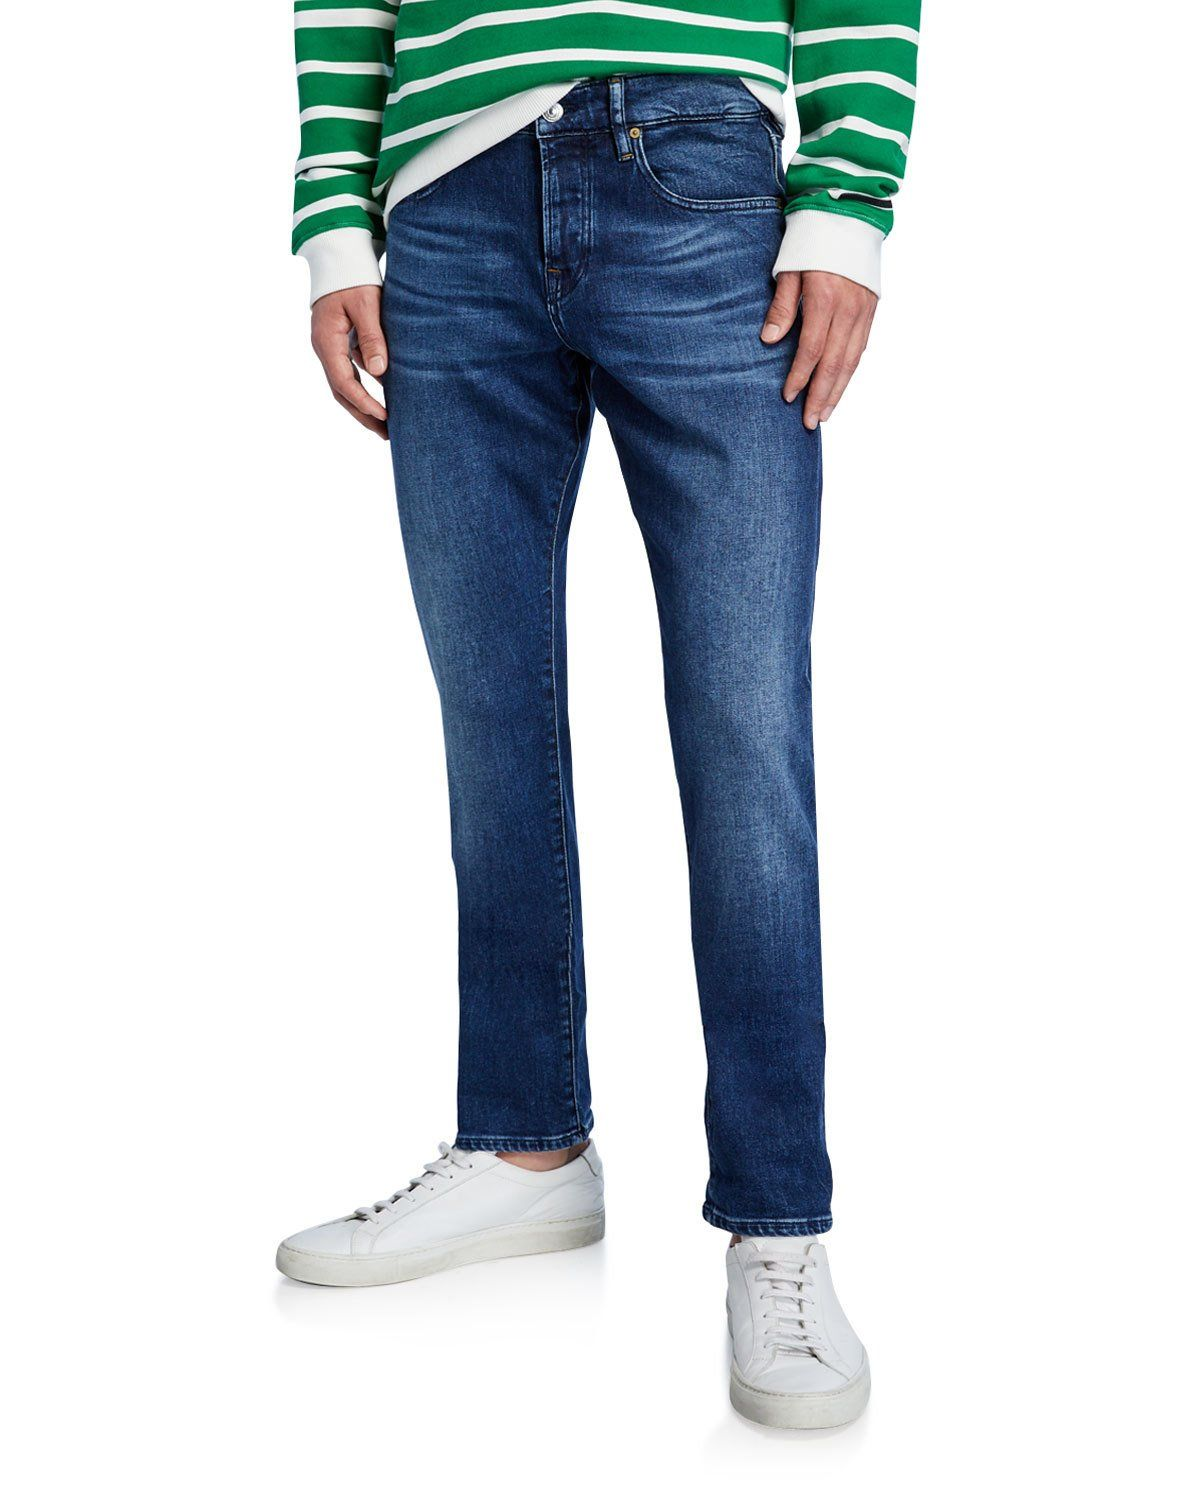 Ralston Skinny Fit Jeans In Get Knotted Skinny Fit Jeans Slim Fit Jeans Skinny Fit